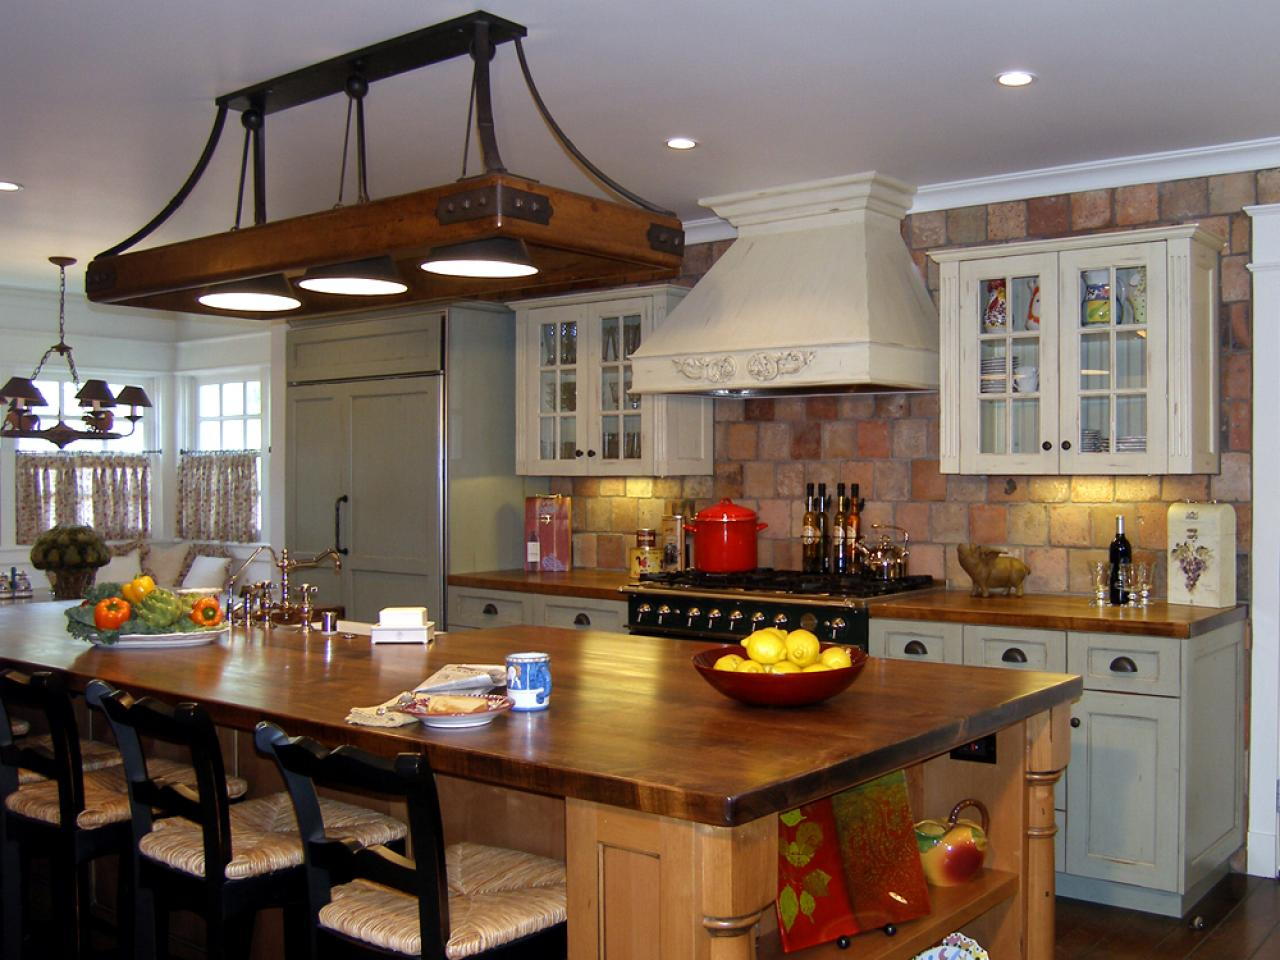 Guide to creating a traditional kitchen hgtv for Kitchen counter decor